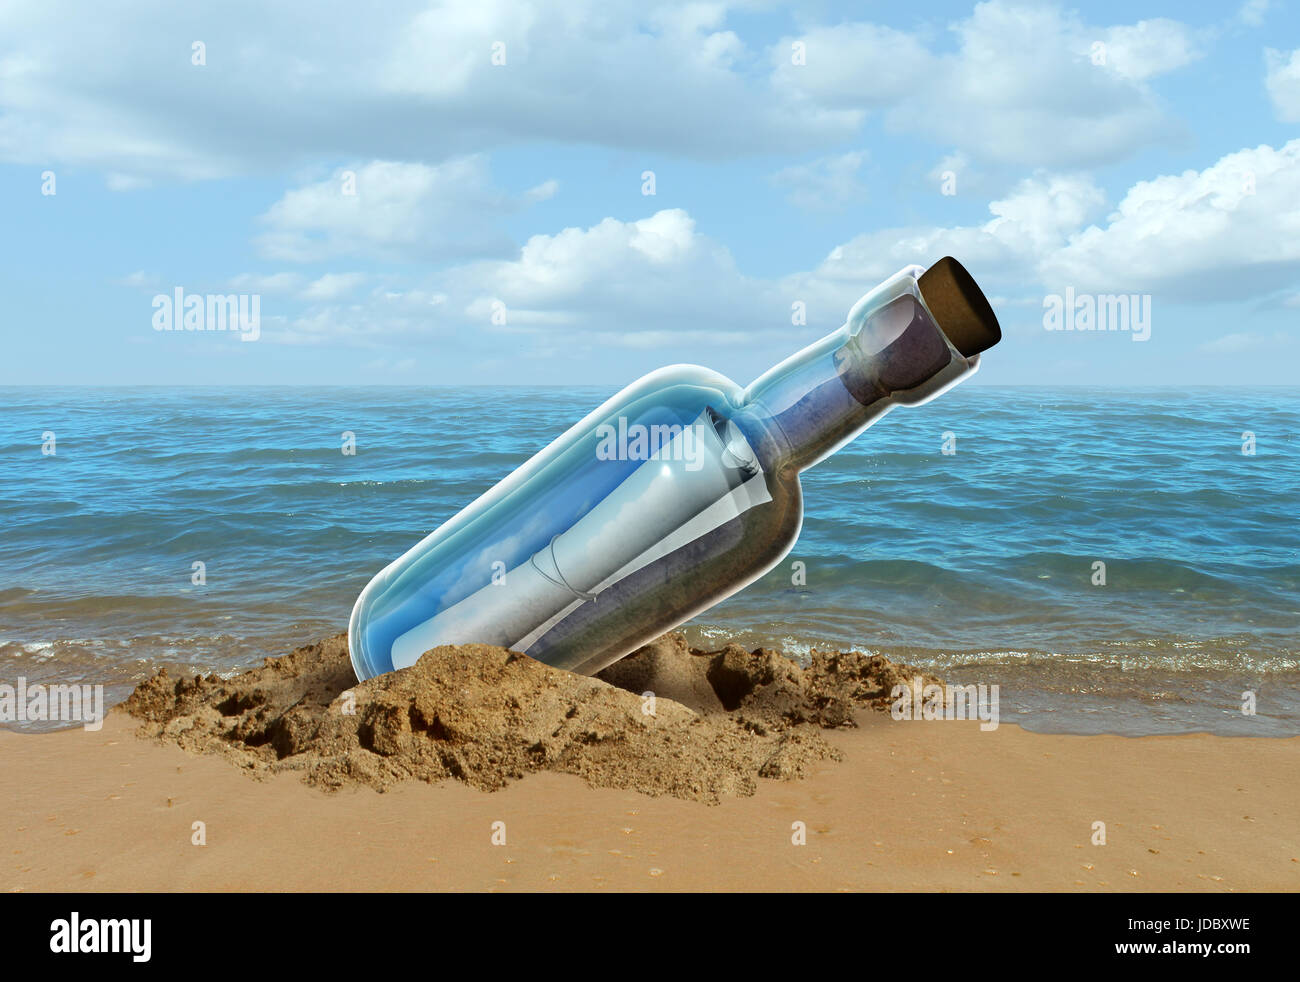 message in a bottle concept as a note on a sealed glass container as a communication metaphor for sending a letter of help from a castaway